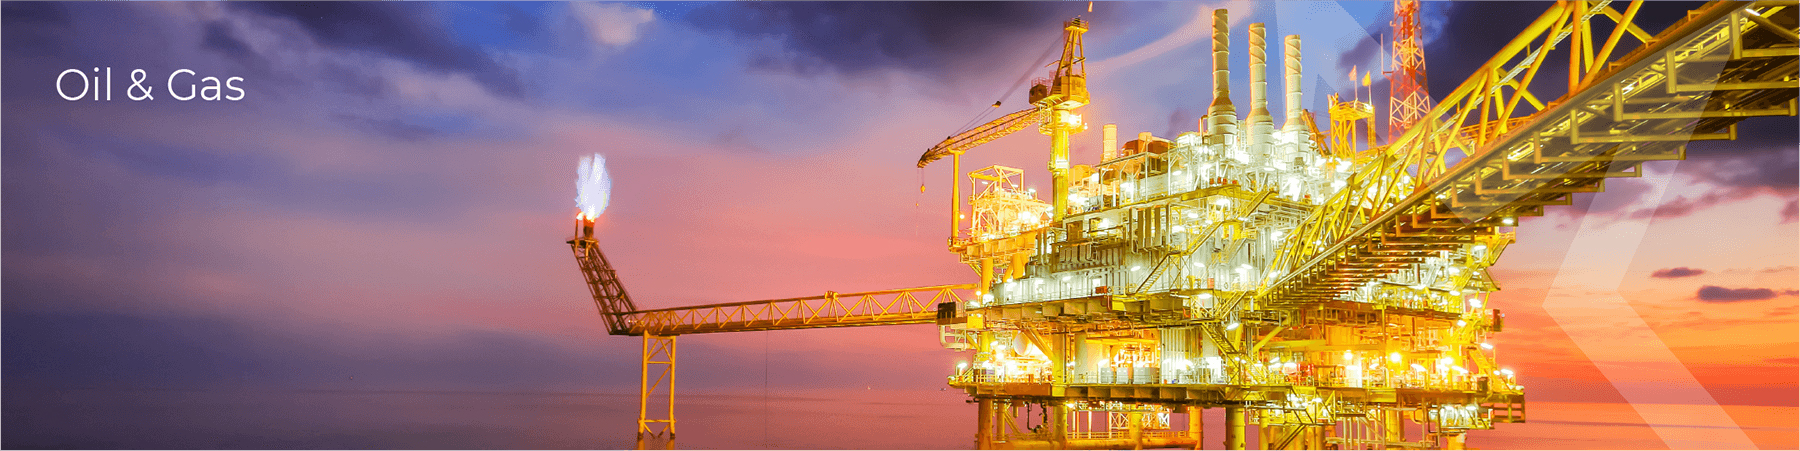 Oil & Gas Industry photo of oil rig in sunset Frenstar Butterfly Valves